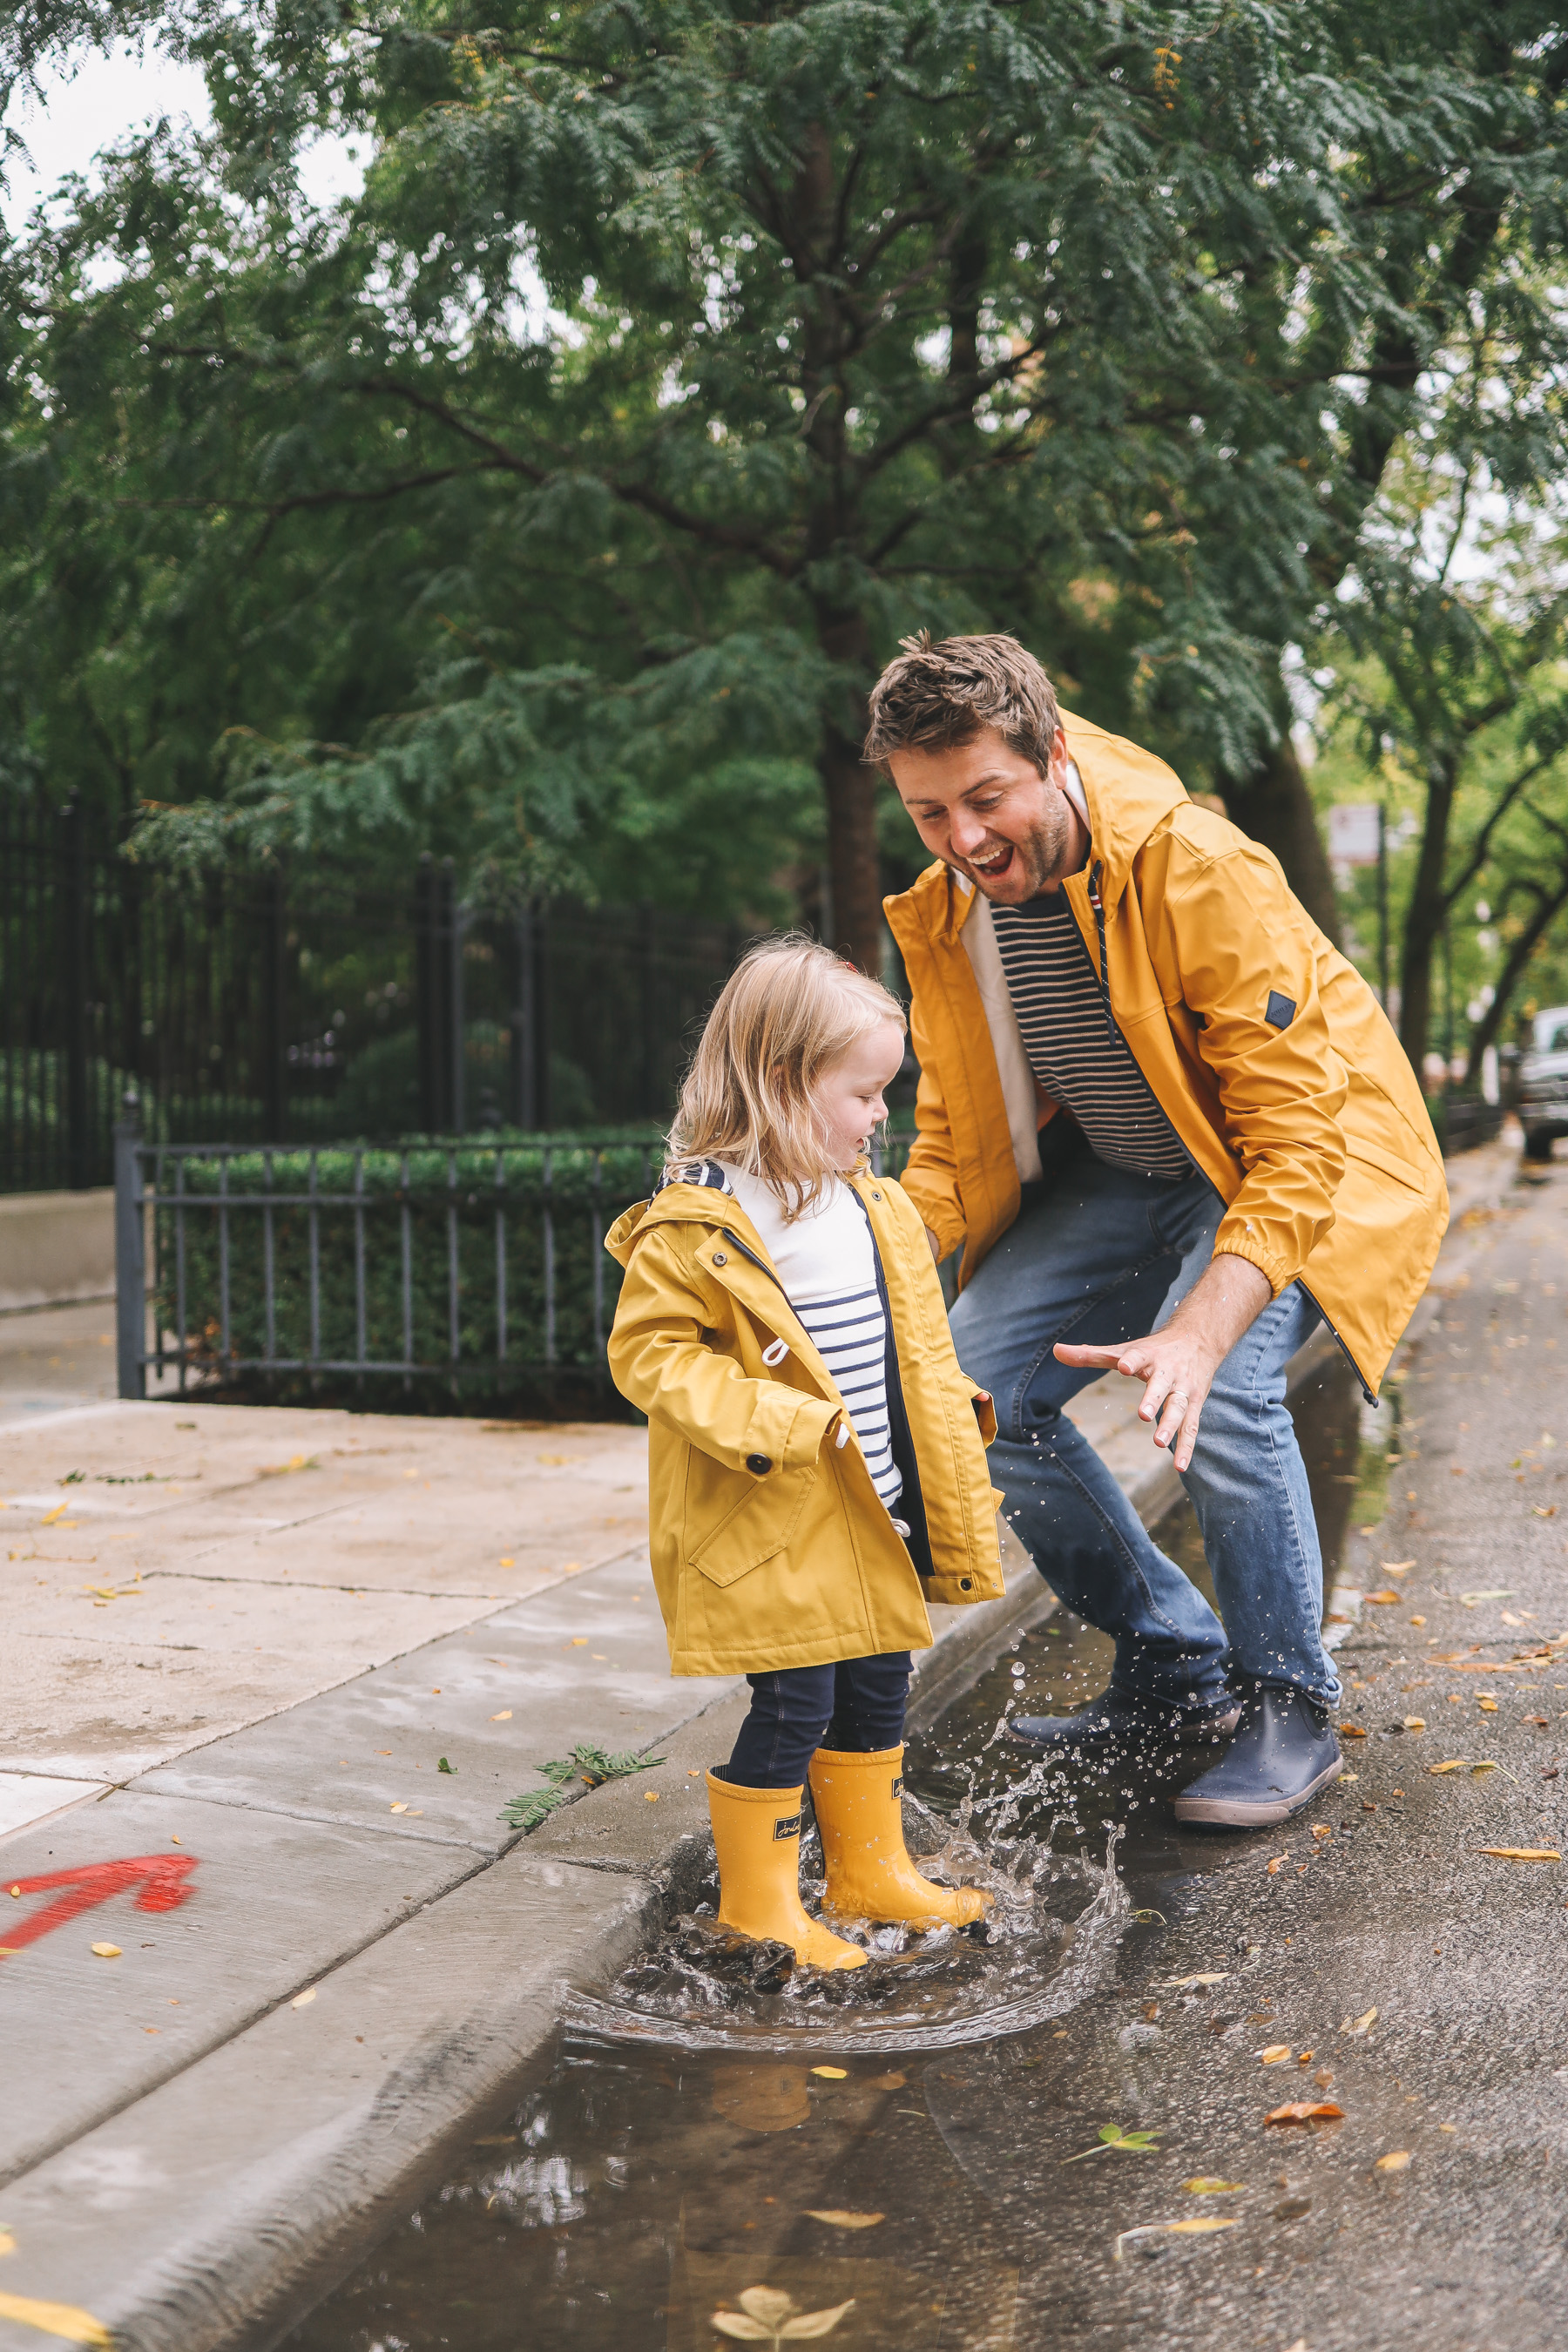 Joules rain gear in yellow